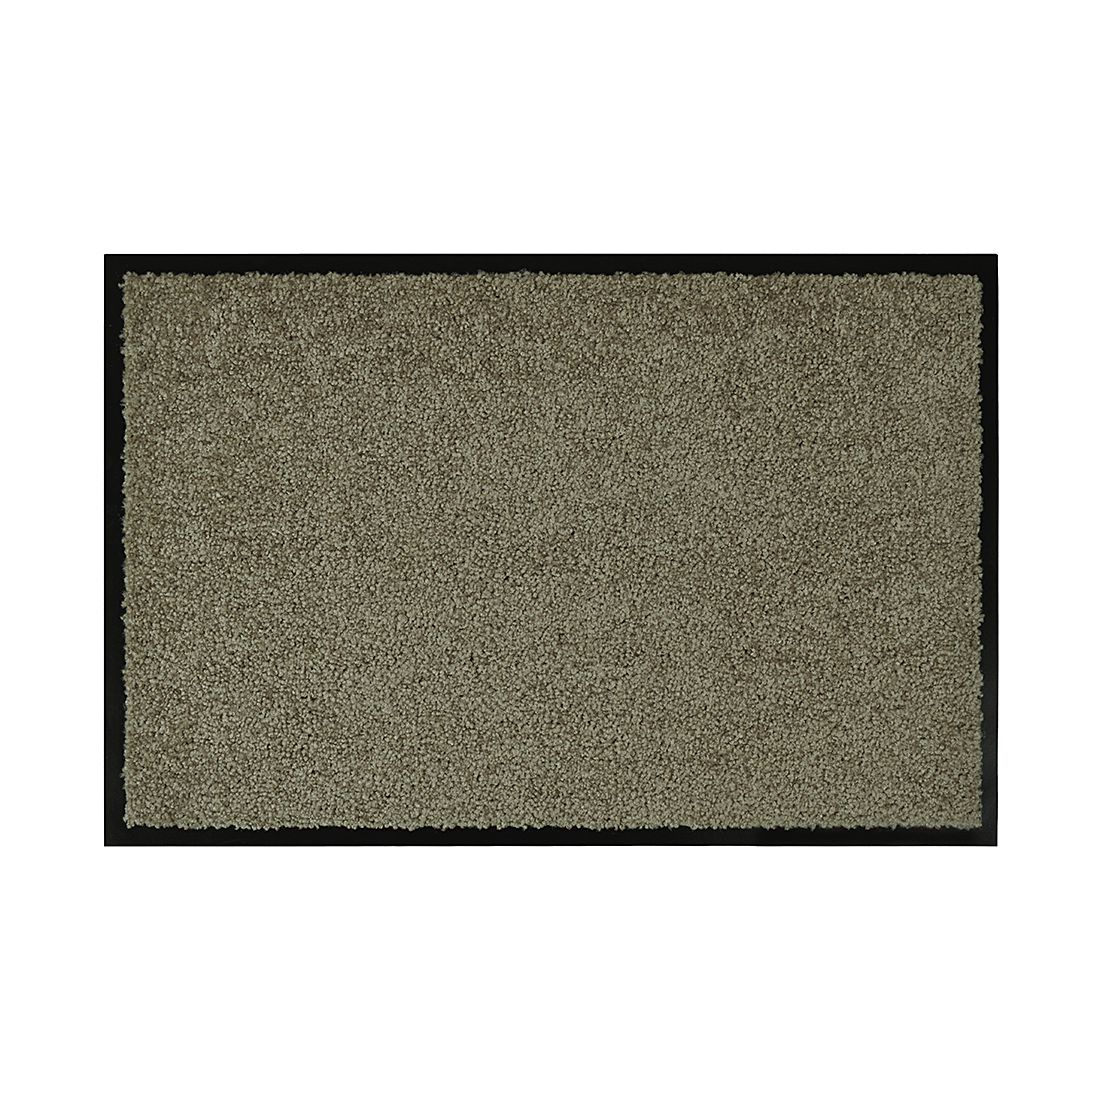 Zerbino Wash e Clean - Grigio talpa - 90 x 120 cm, Hanse Home Collection